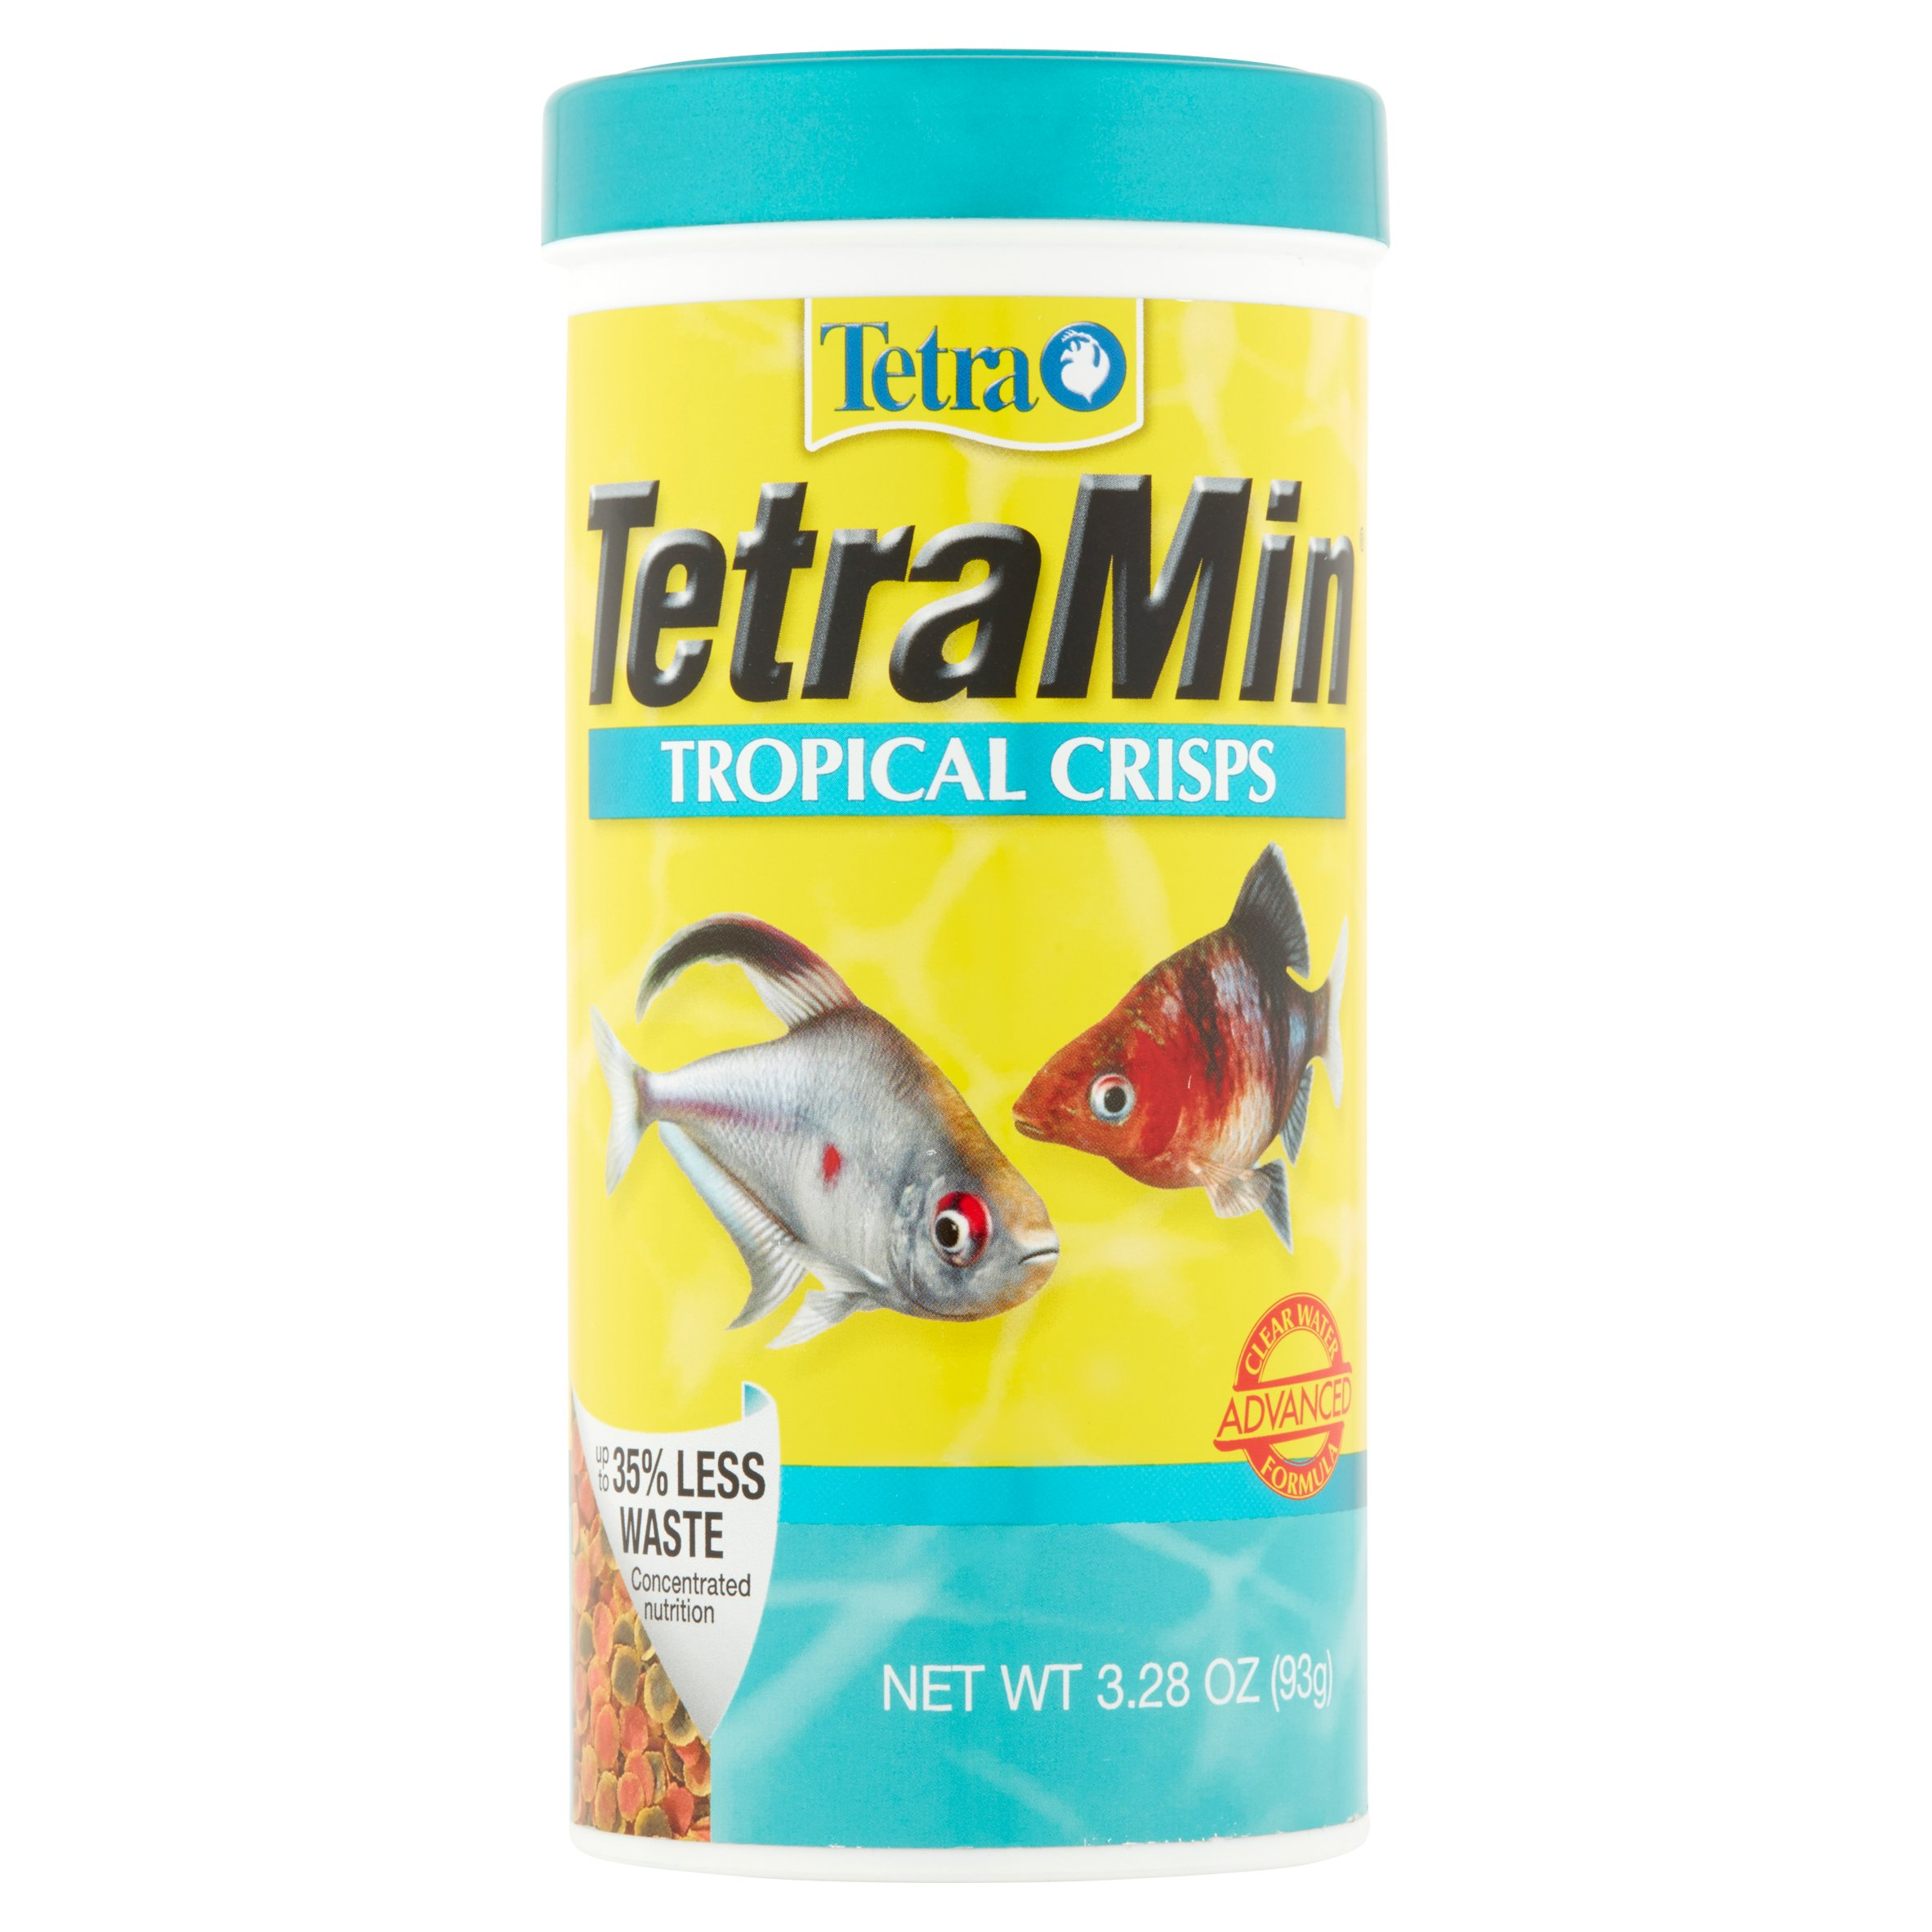 Tetra TetraMin Tropical Food Crisps, Tropical Fish- 3.28 oz